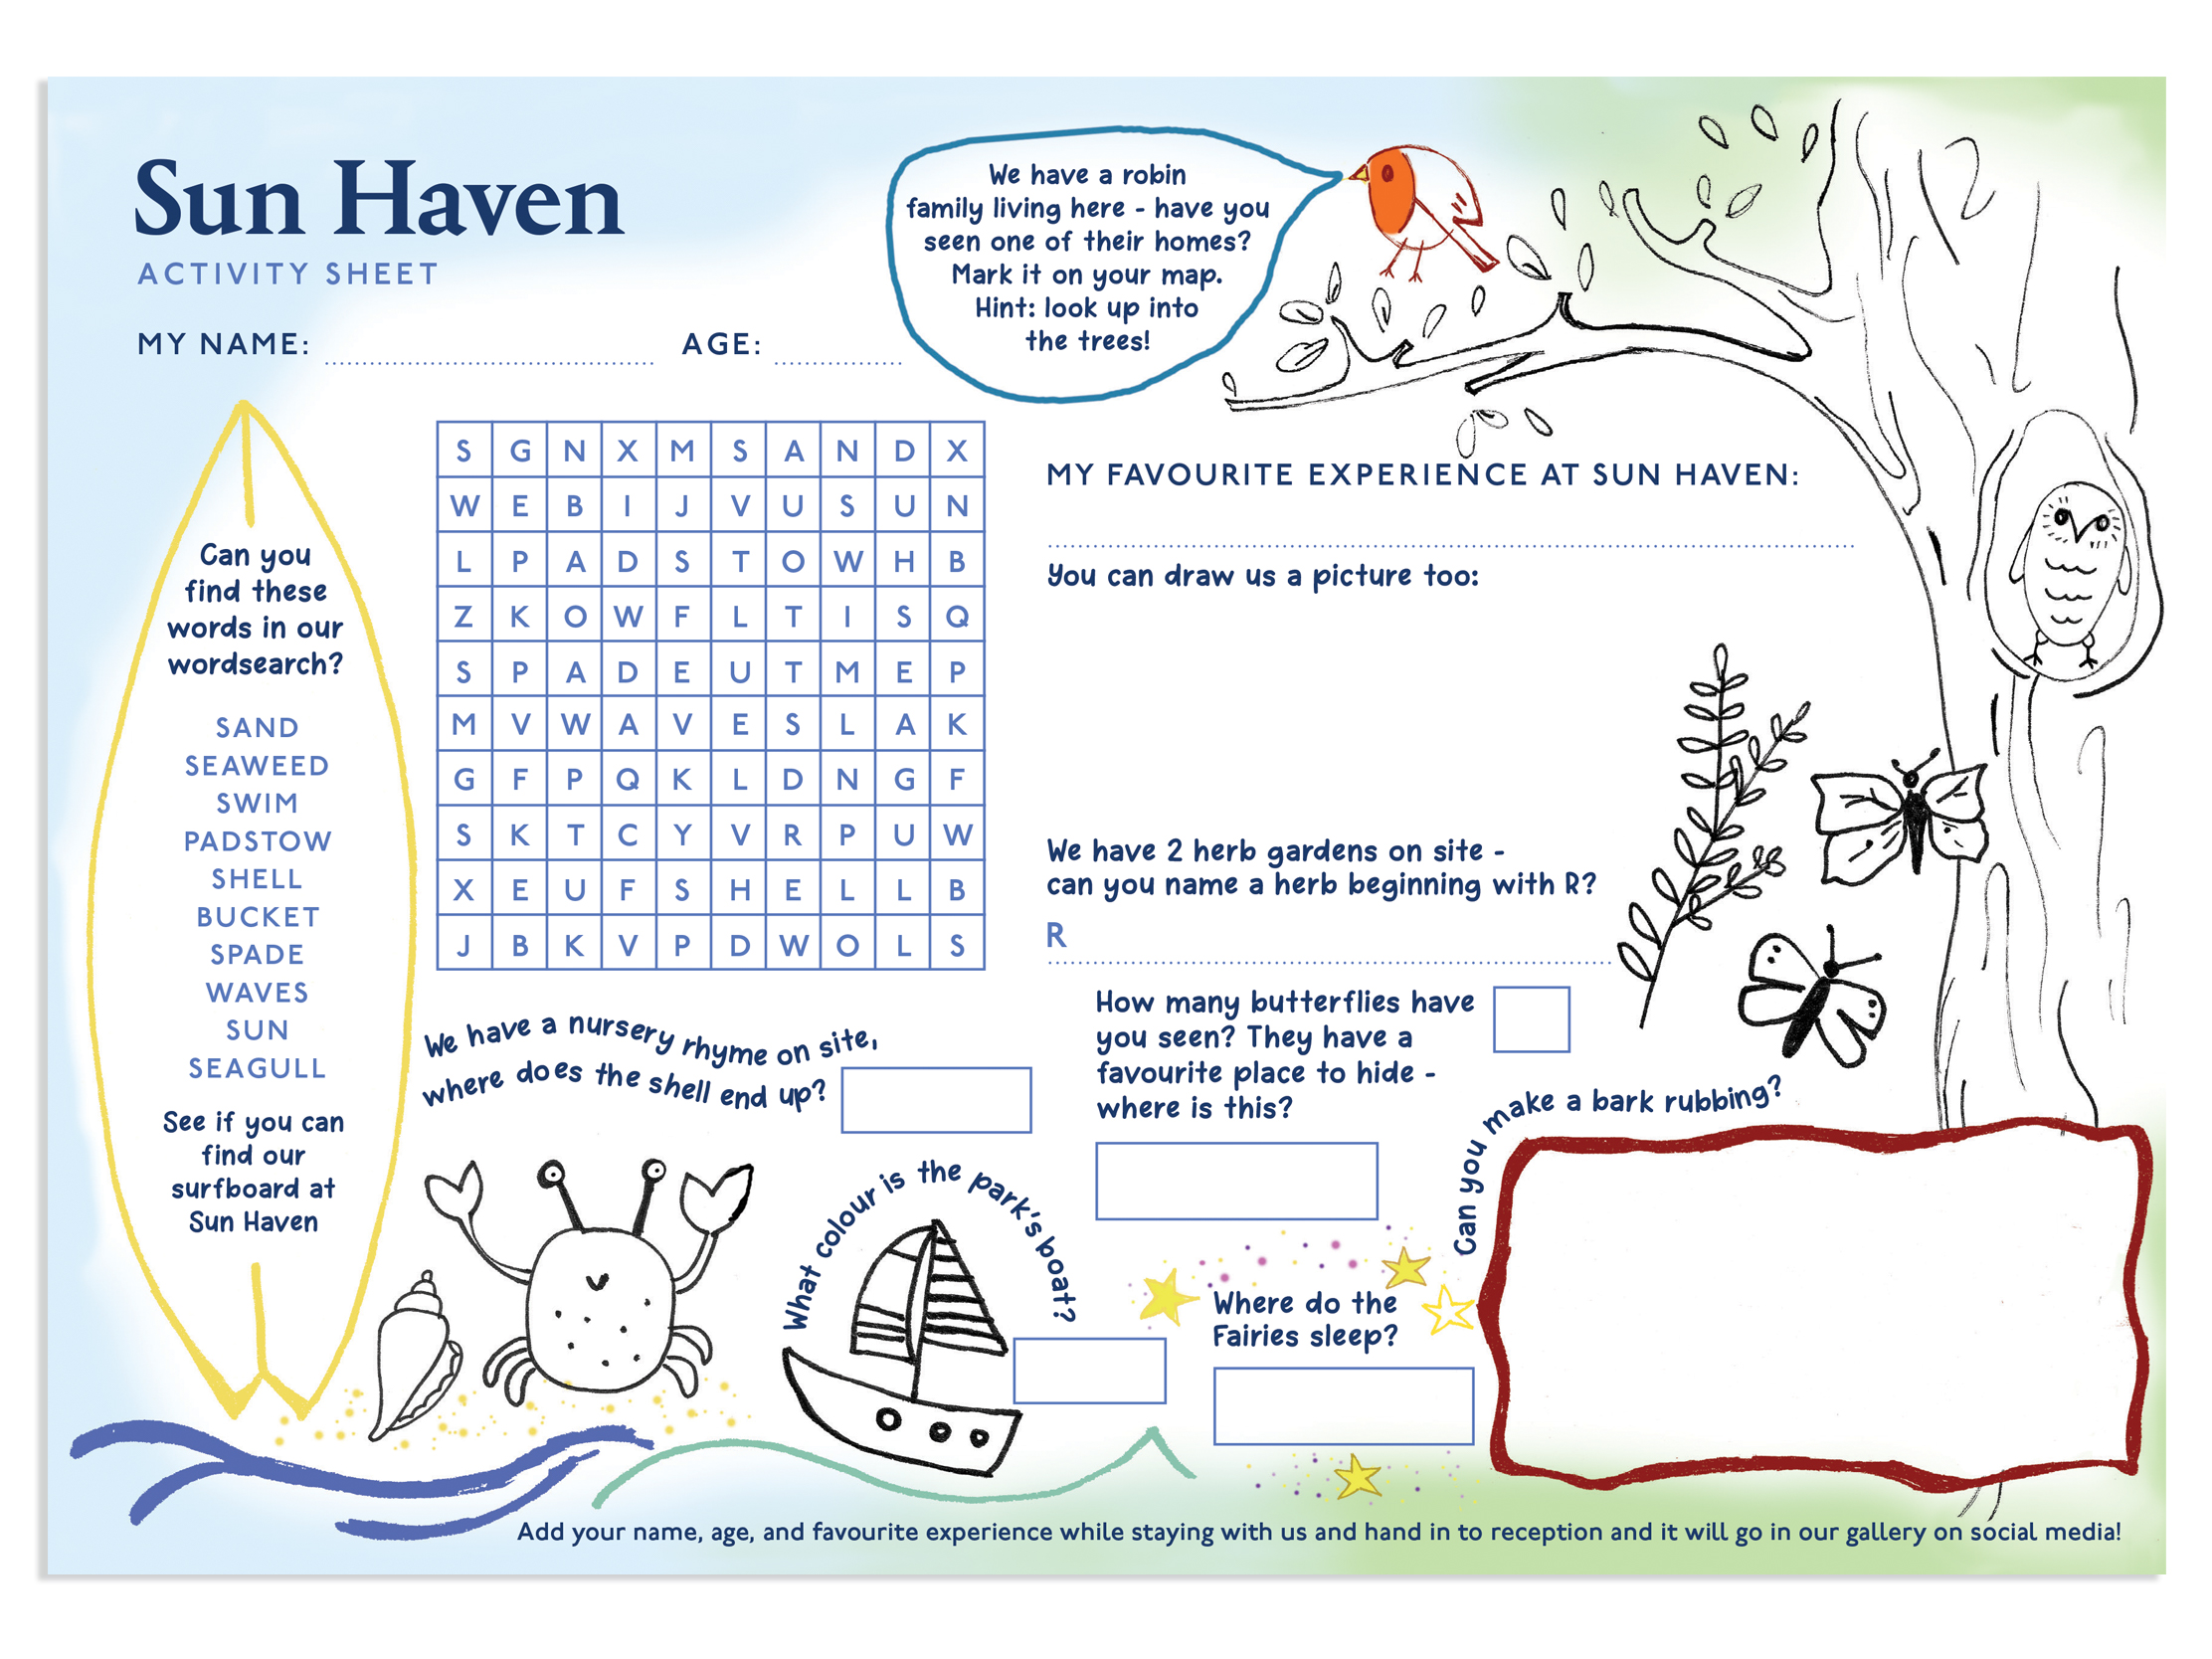 Activity Sheet for Sun Haven